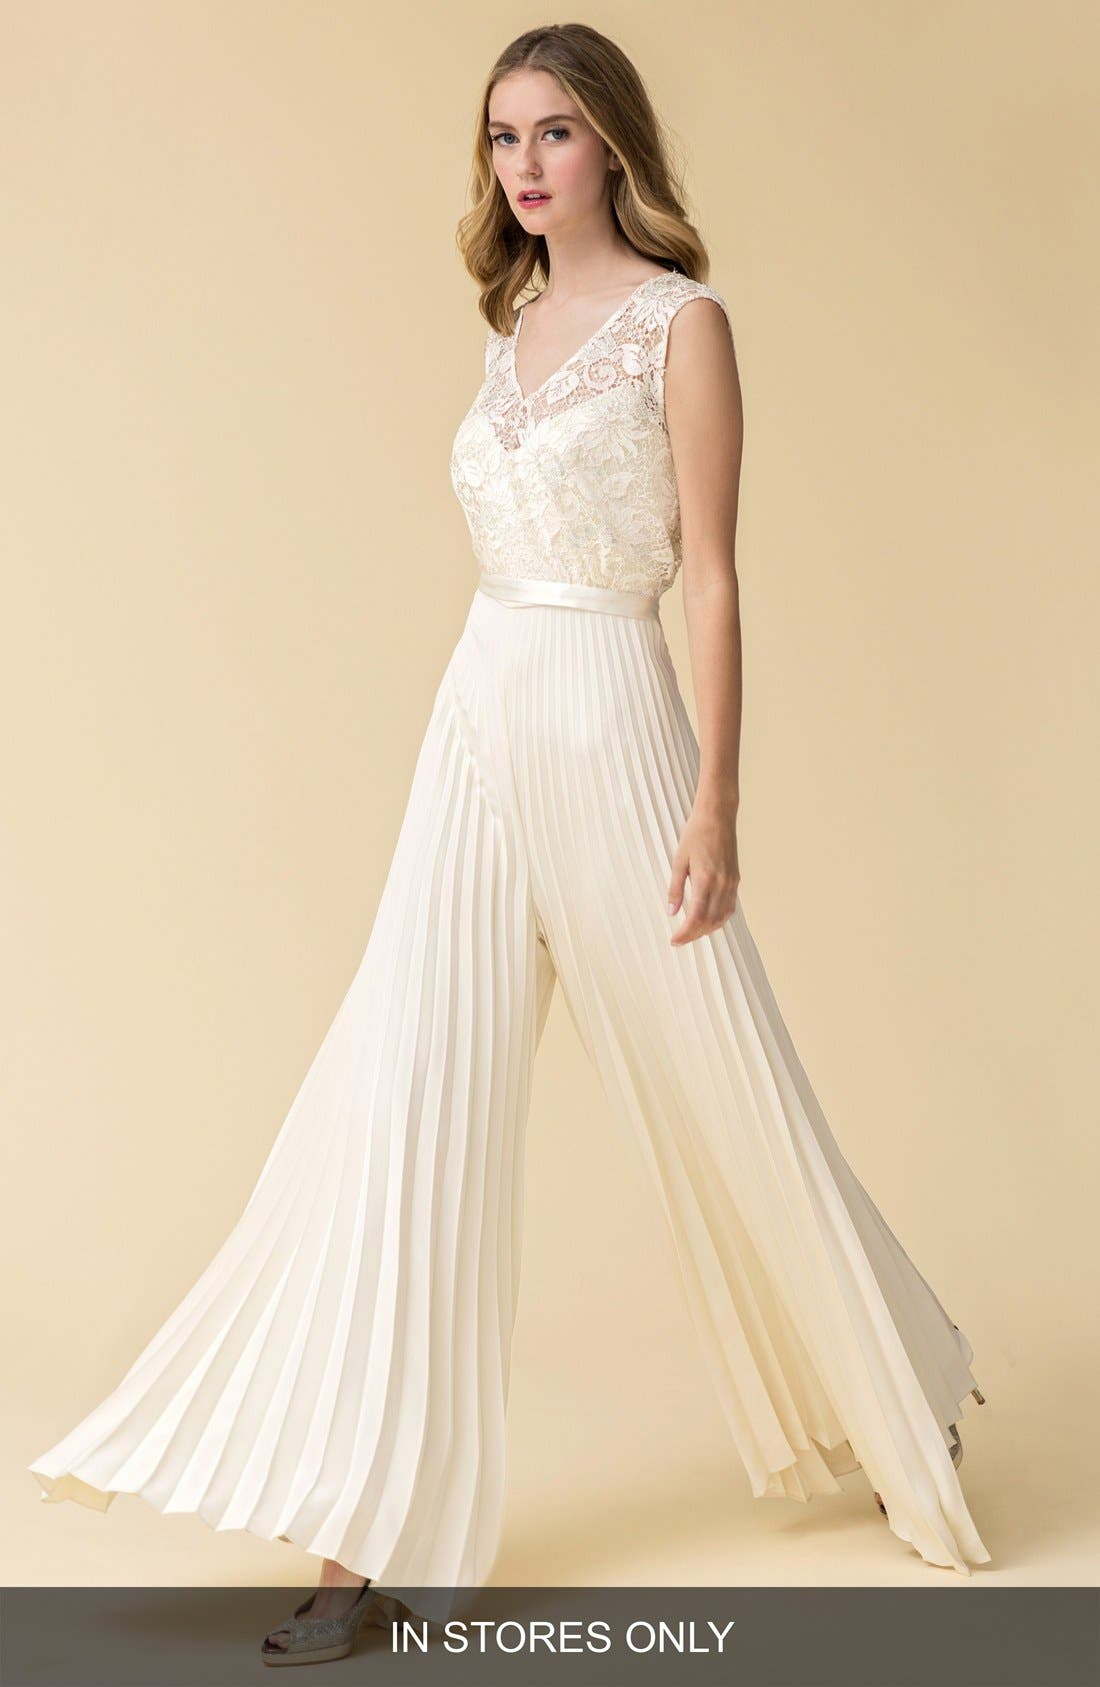 Caroline DeVillo 'Audrey' Pleat Wide Leg Silk Jumpsuit (In Stores Only)